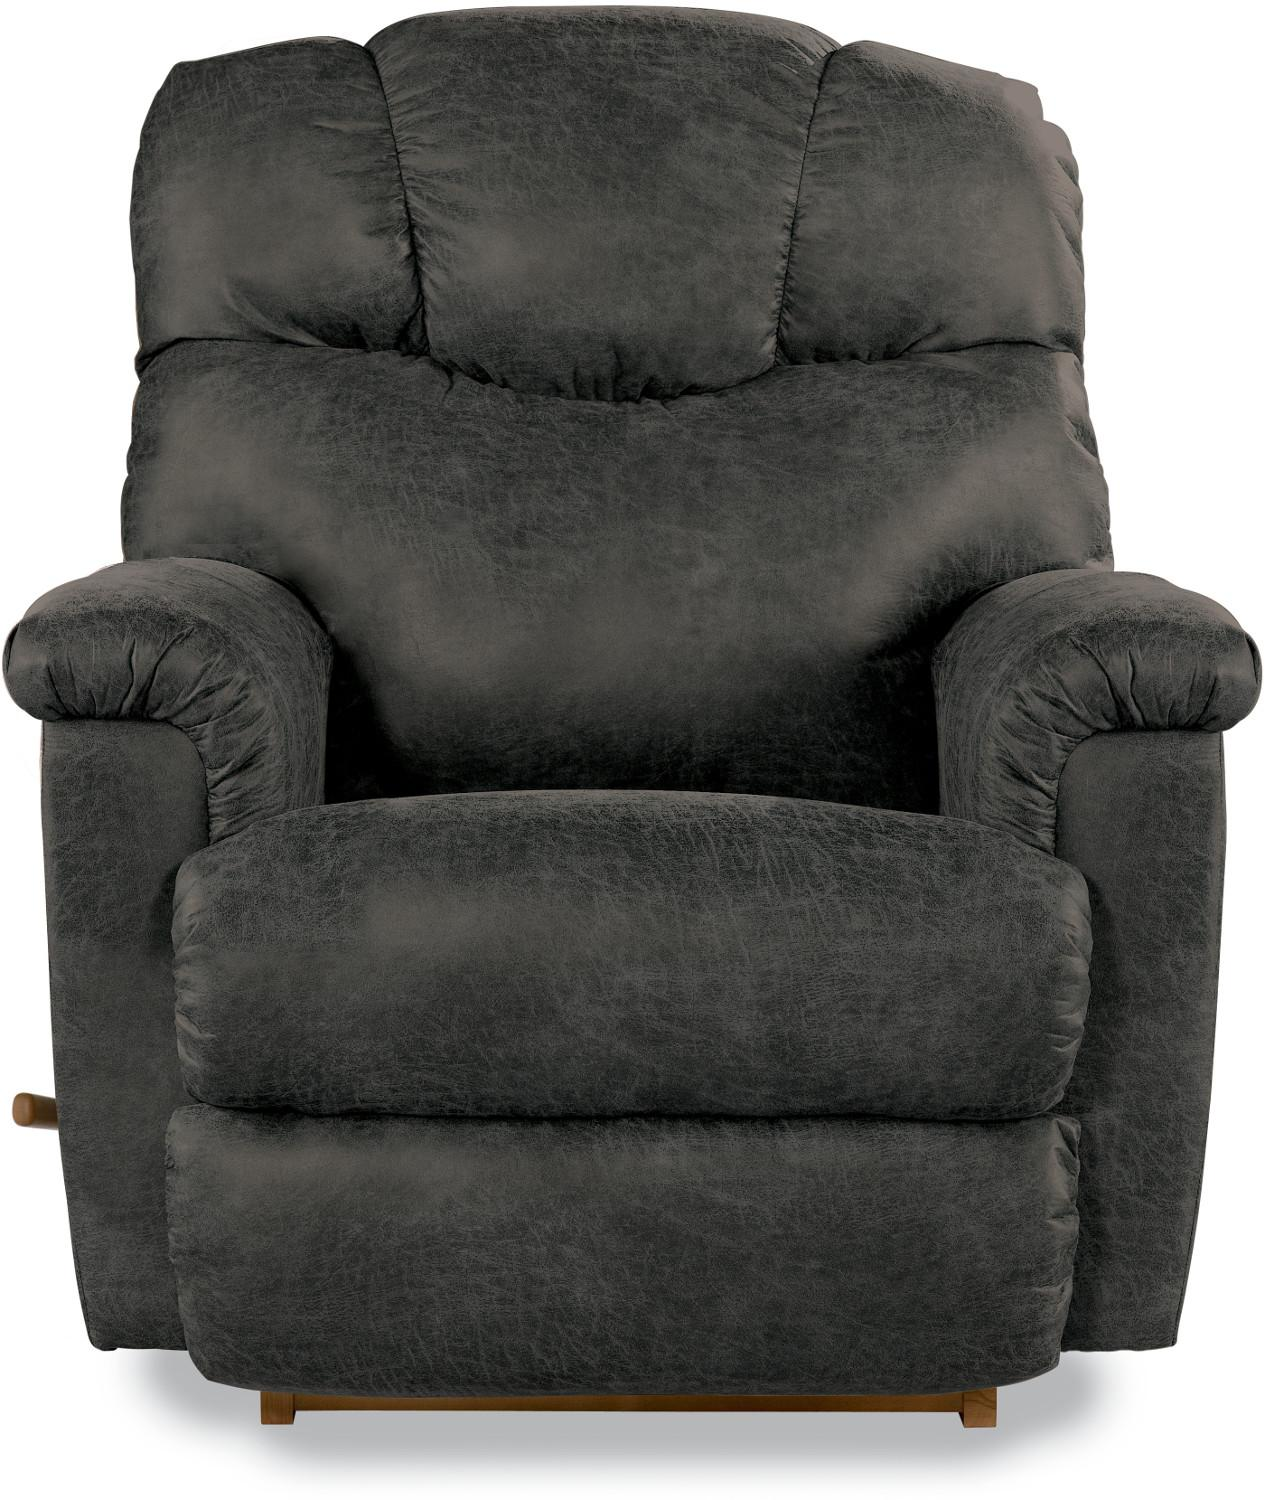 Lancer Wall Recliner by La-Z-Boy at Sparks HomeStore